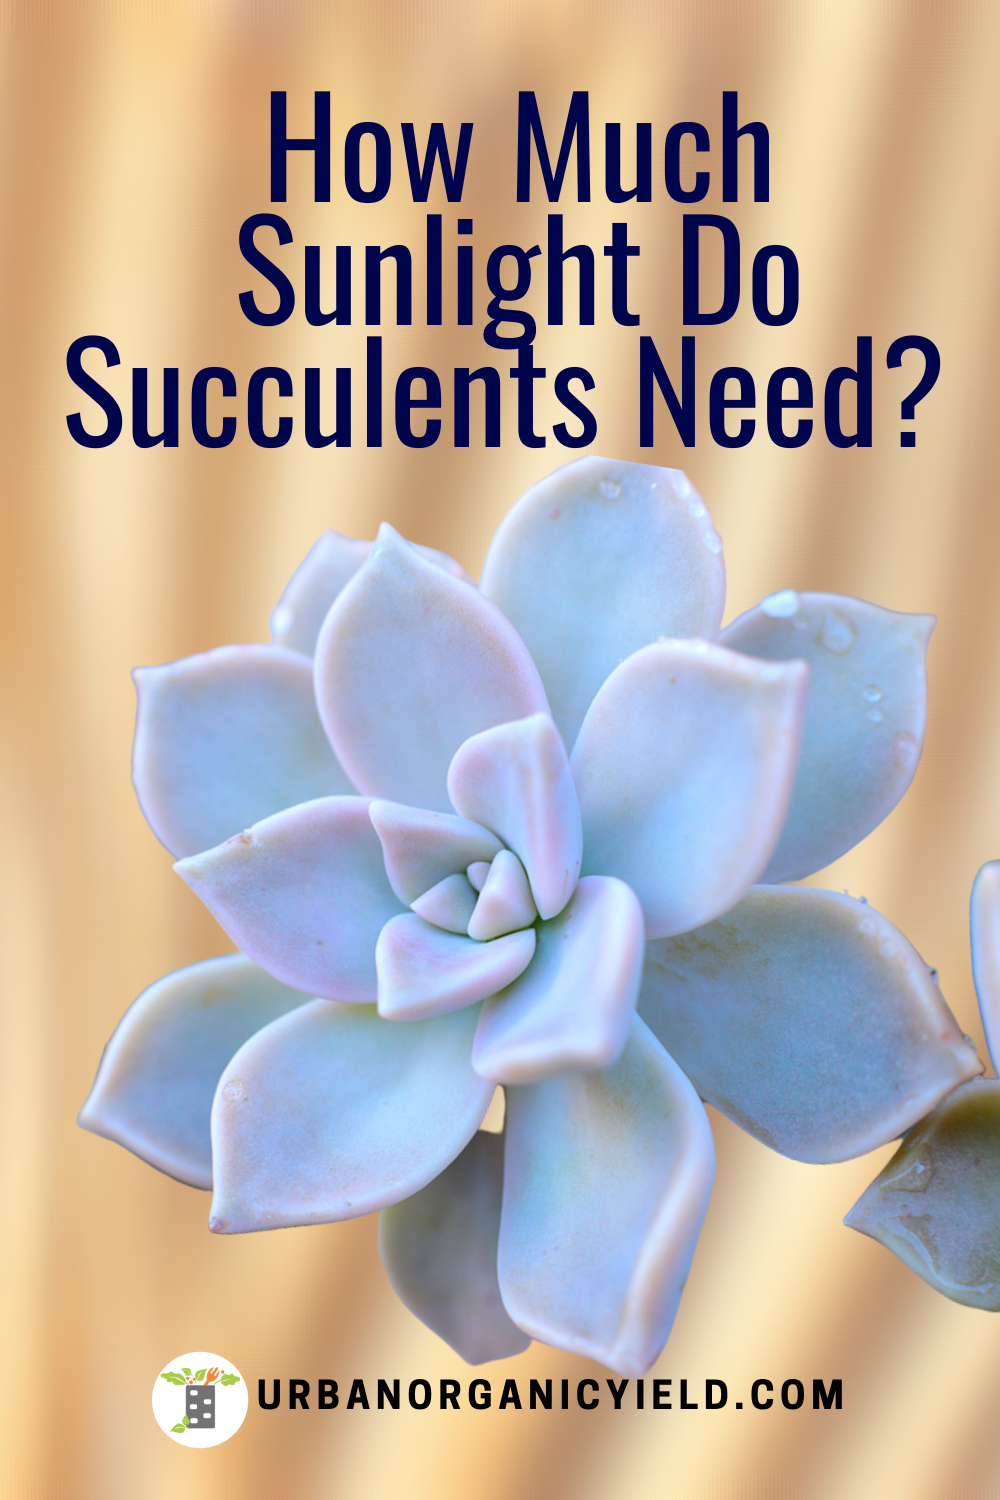 Do Succulents Need A Lot of Sun? in 2020 Succulents, Sun